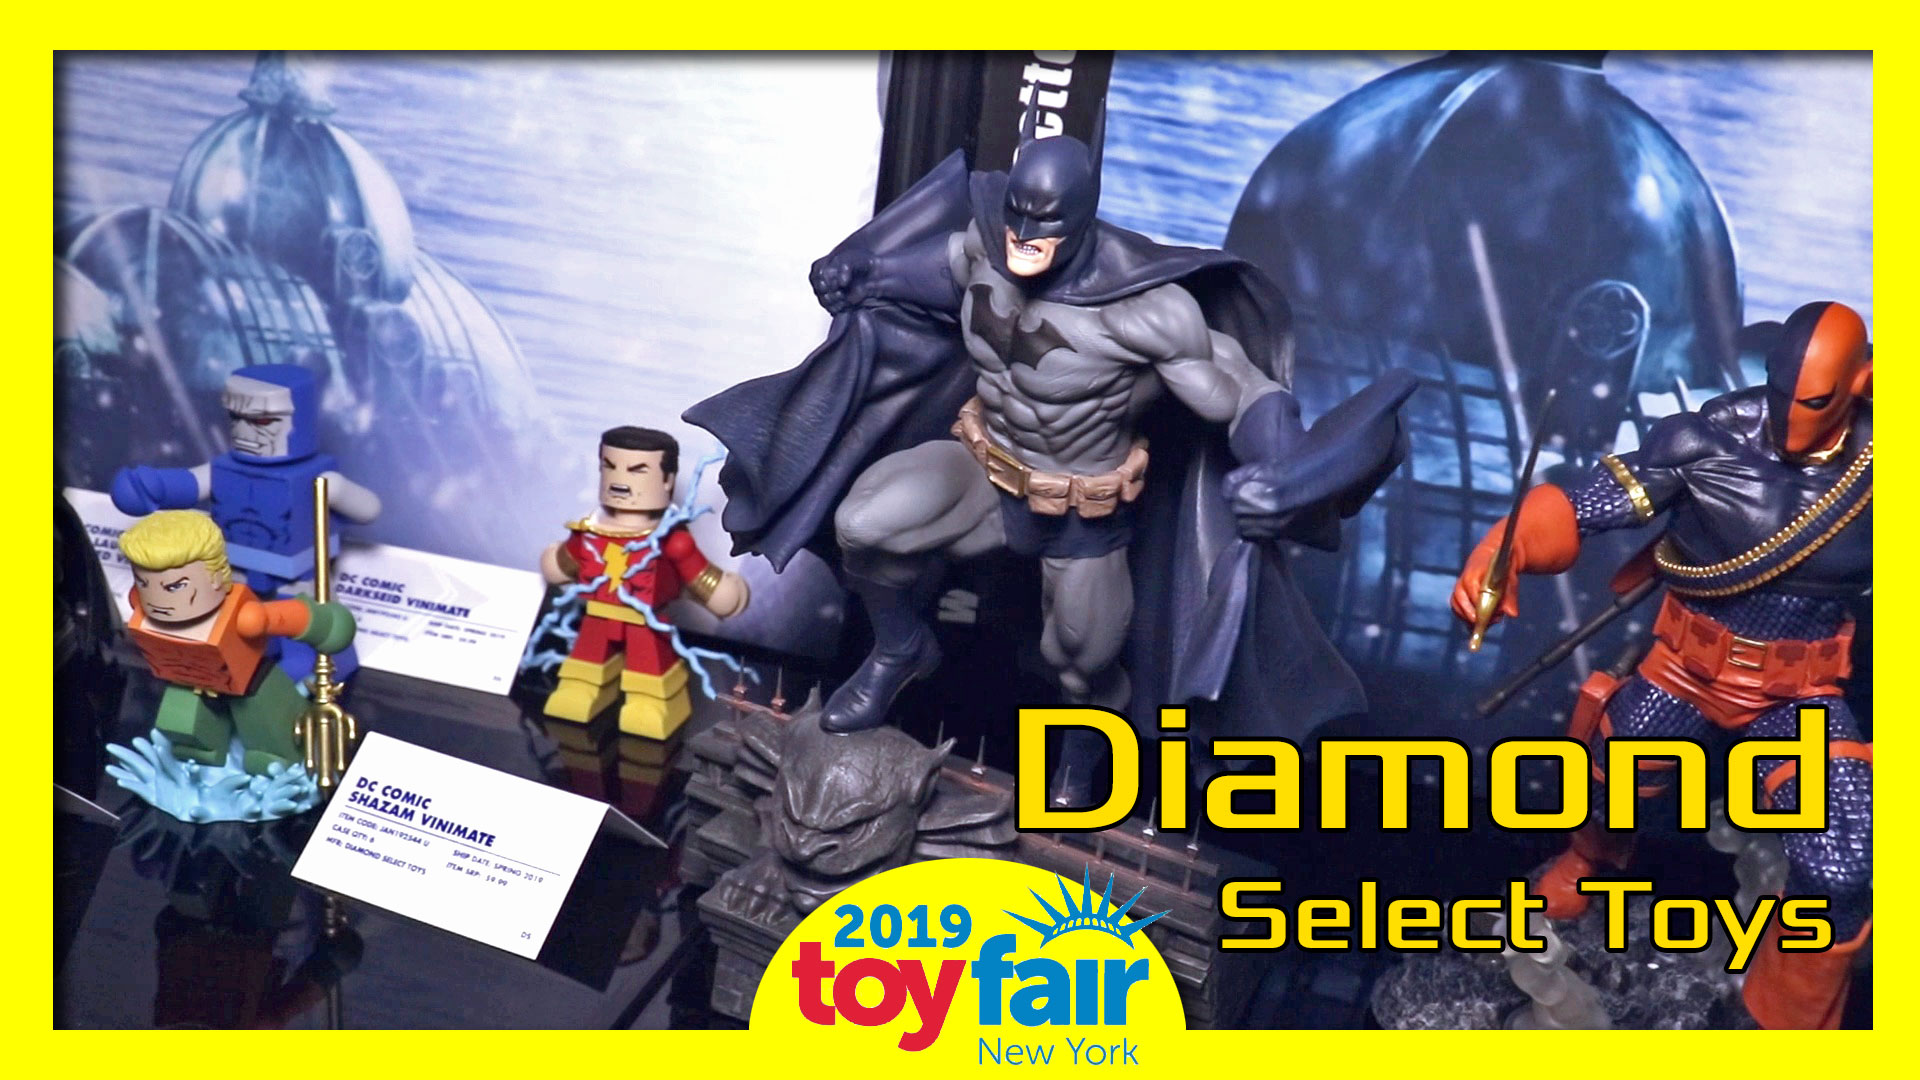 Diamond Select Toys @ToyFair 2019